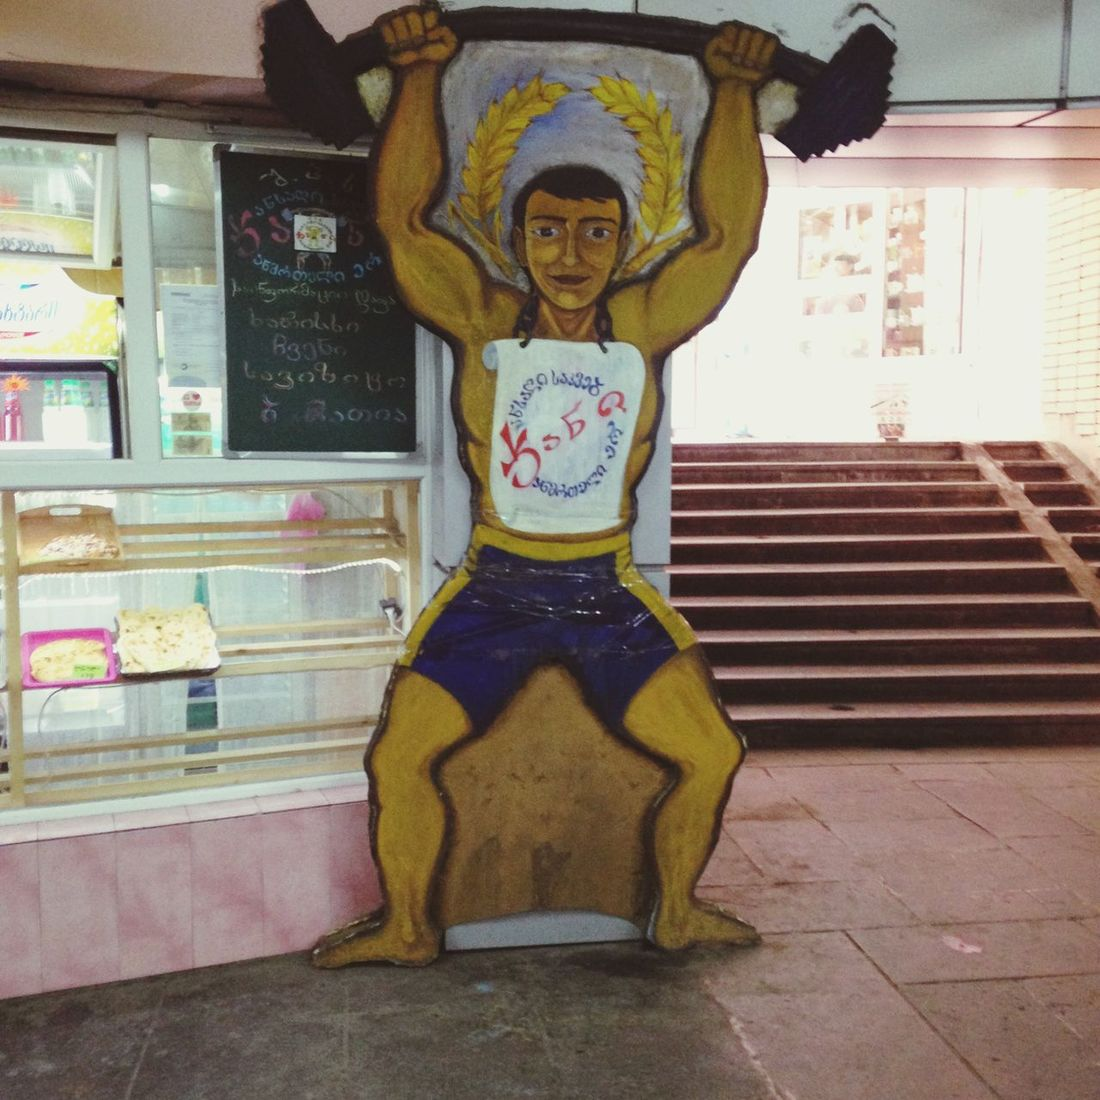 Tbilisi Jani-Jani. Figure of a man lifting weights - his t-shirt says something about healthy food.